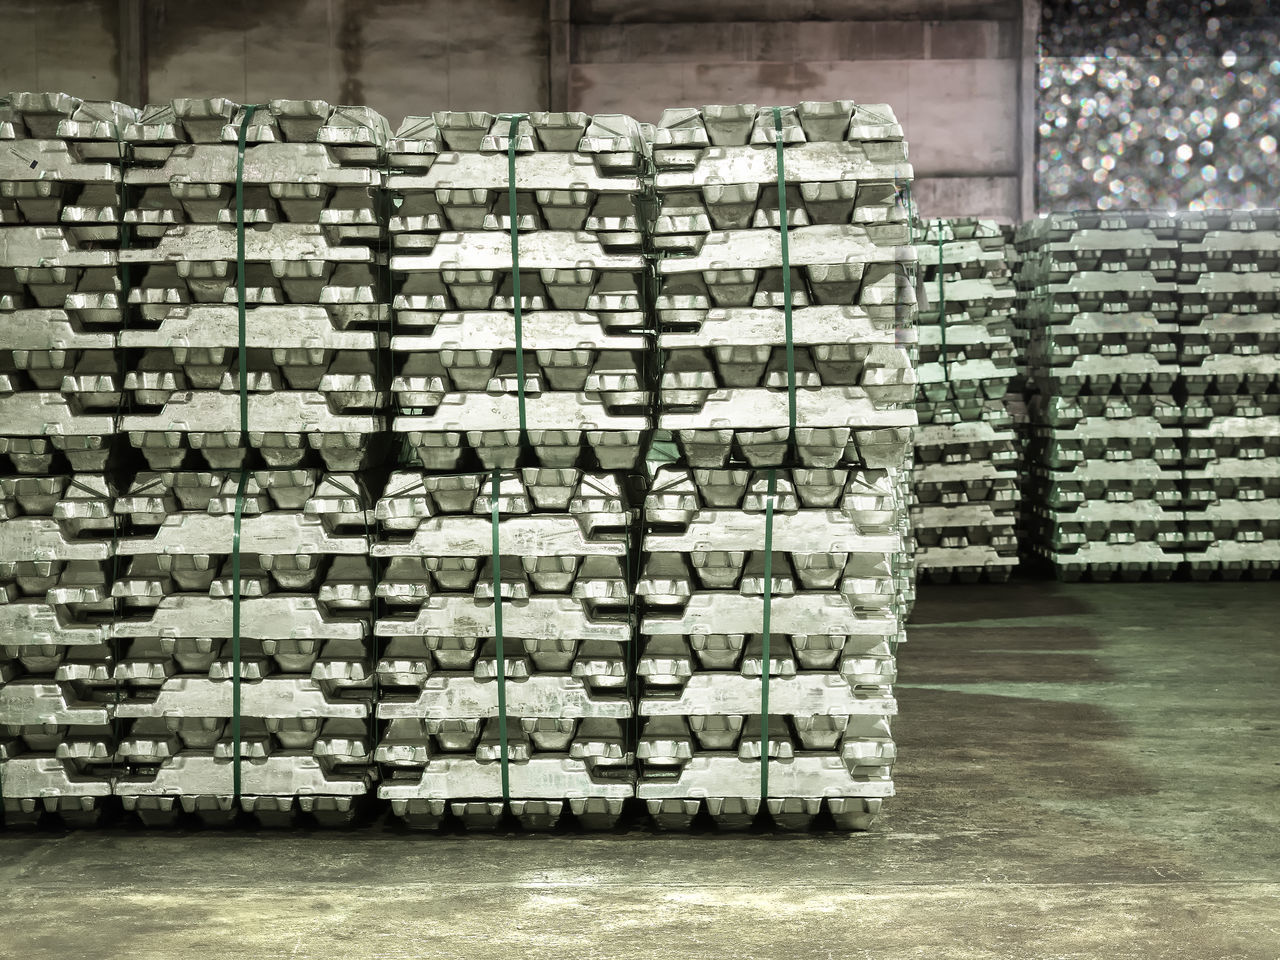 Stacking of aluminium ingot in warehouse Stack Large Group Of Objects No People Abundance Day Indoors  Consumerism Warehouse aluminium Ingot Import Export storage Architecture Equipment Trade Close-up Handling Zinc Cargo Container Harbor Shipping Logistics Mode Of Transport Silver  Steel Expensive industry Factory Automotive structure